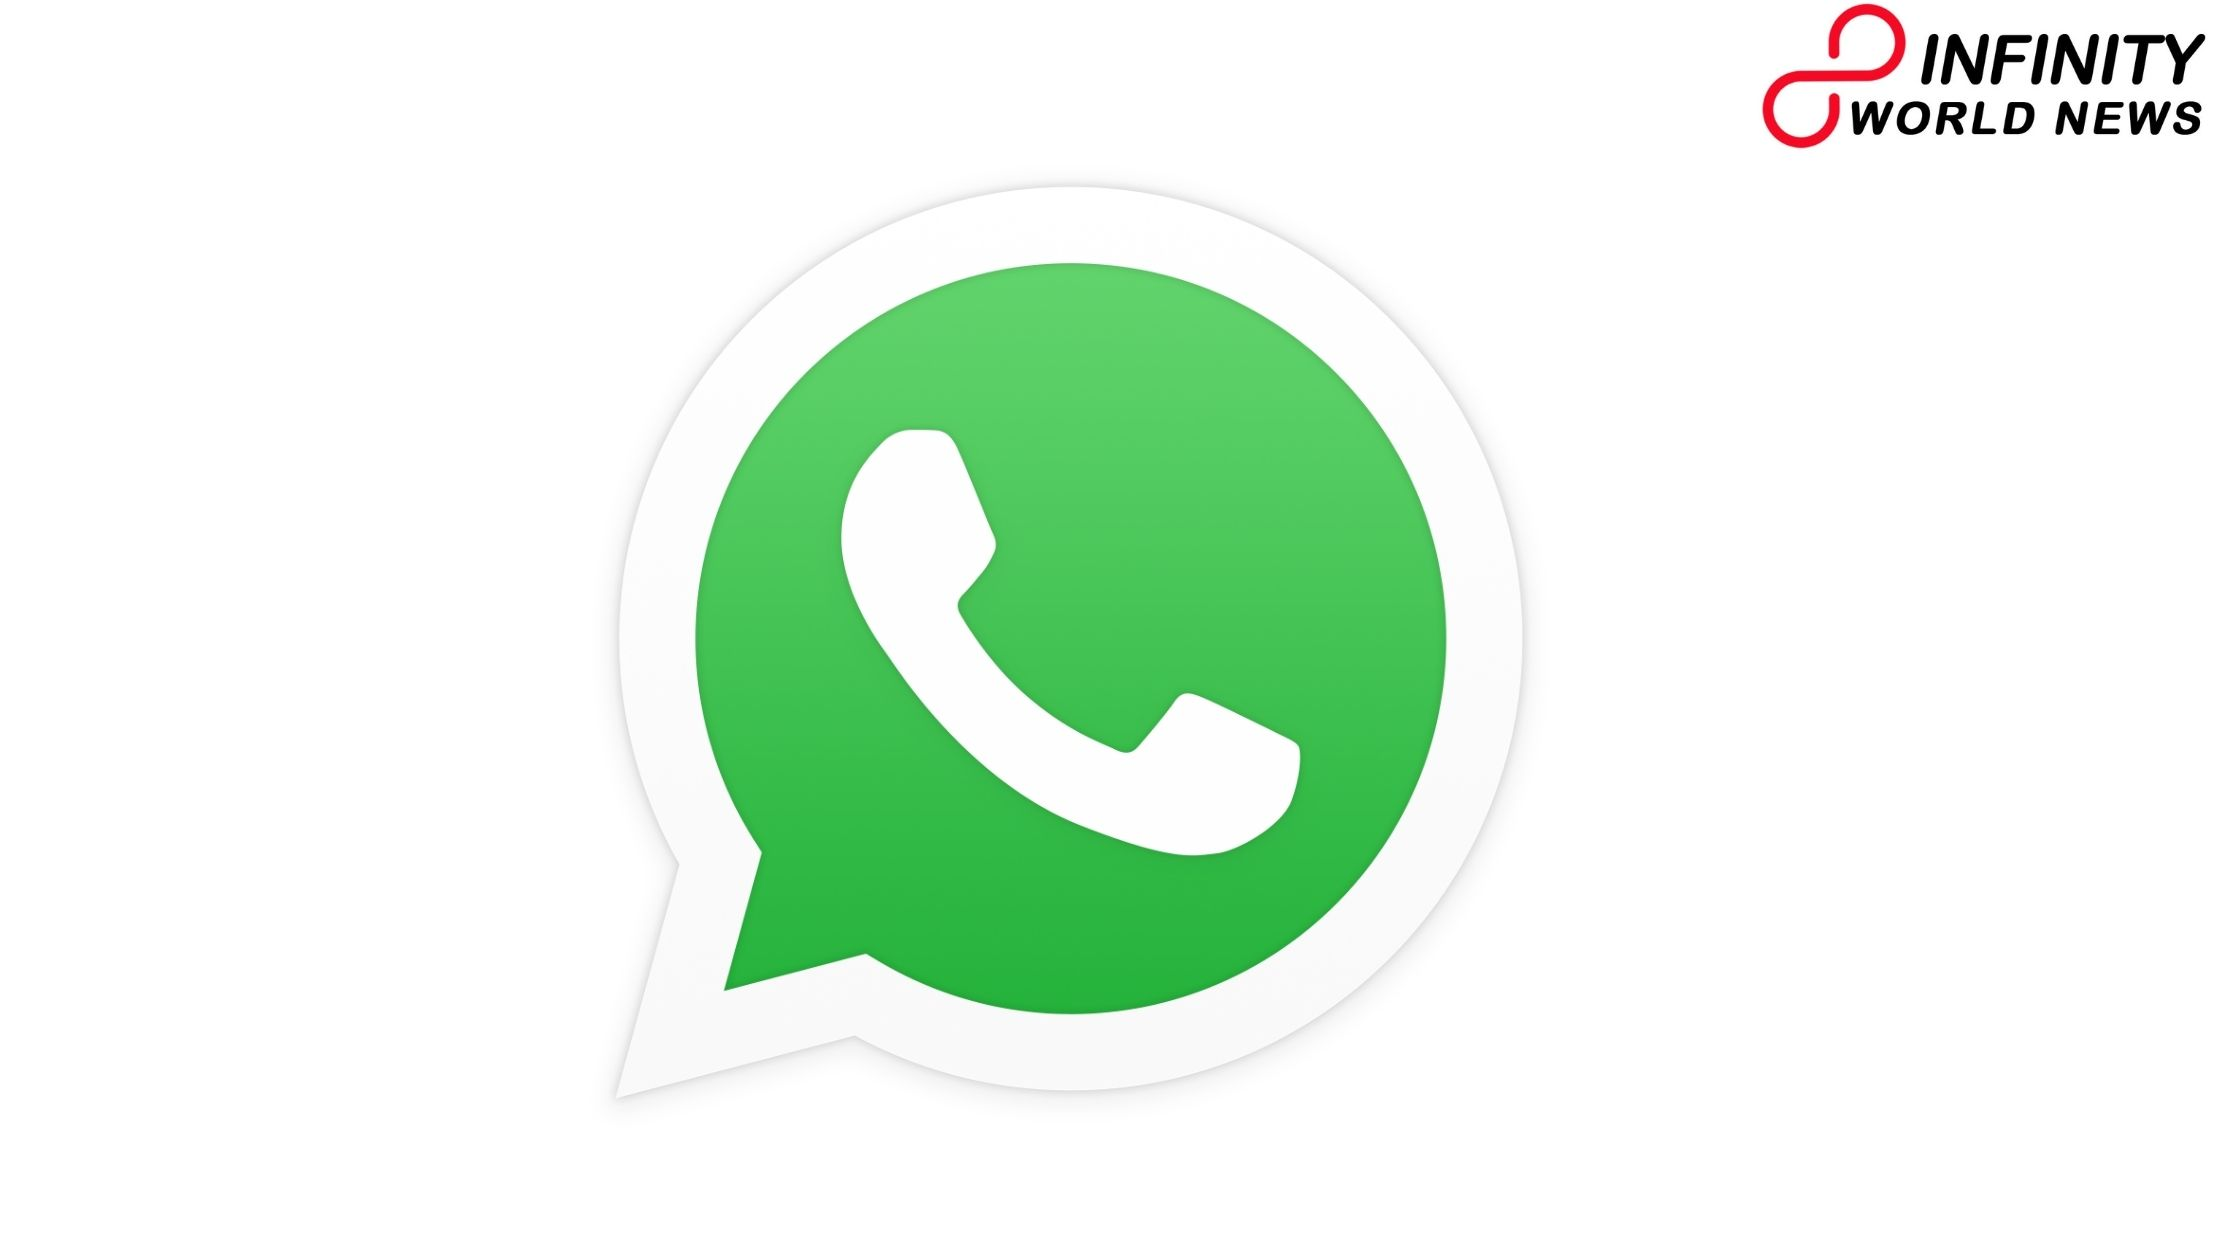 Here are the main 5 WhatsApp highlights expected to come in 2021